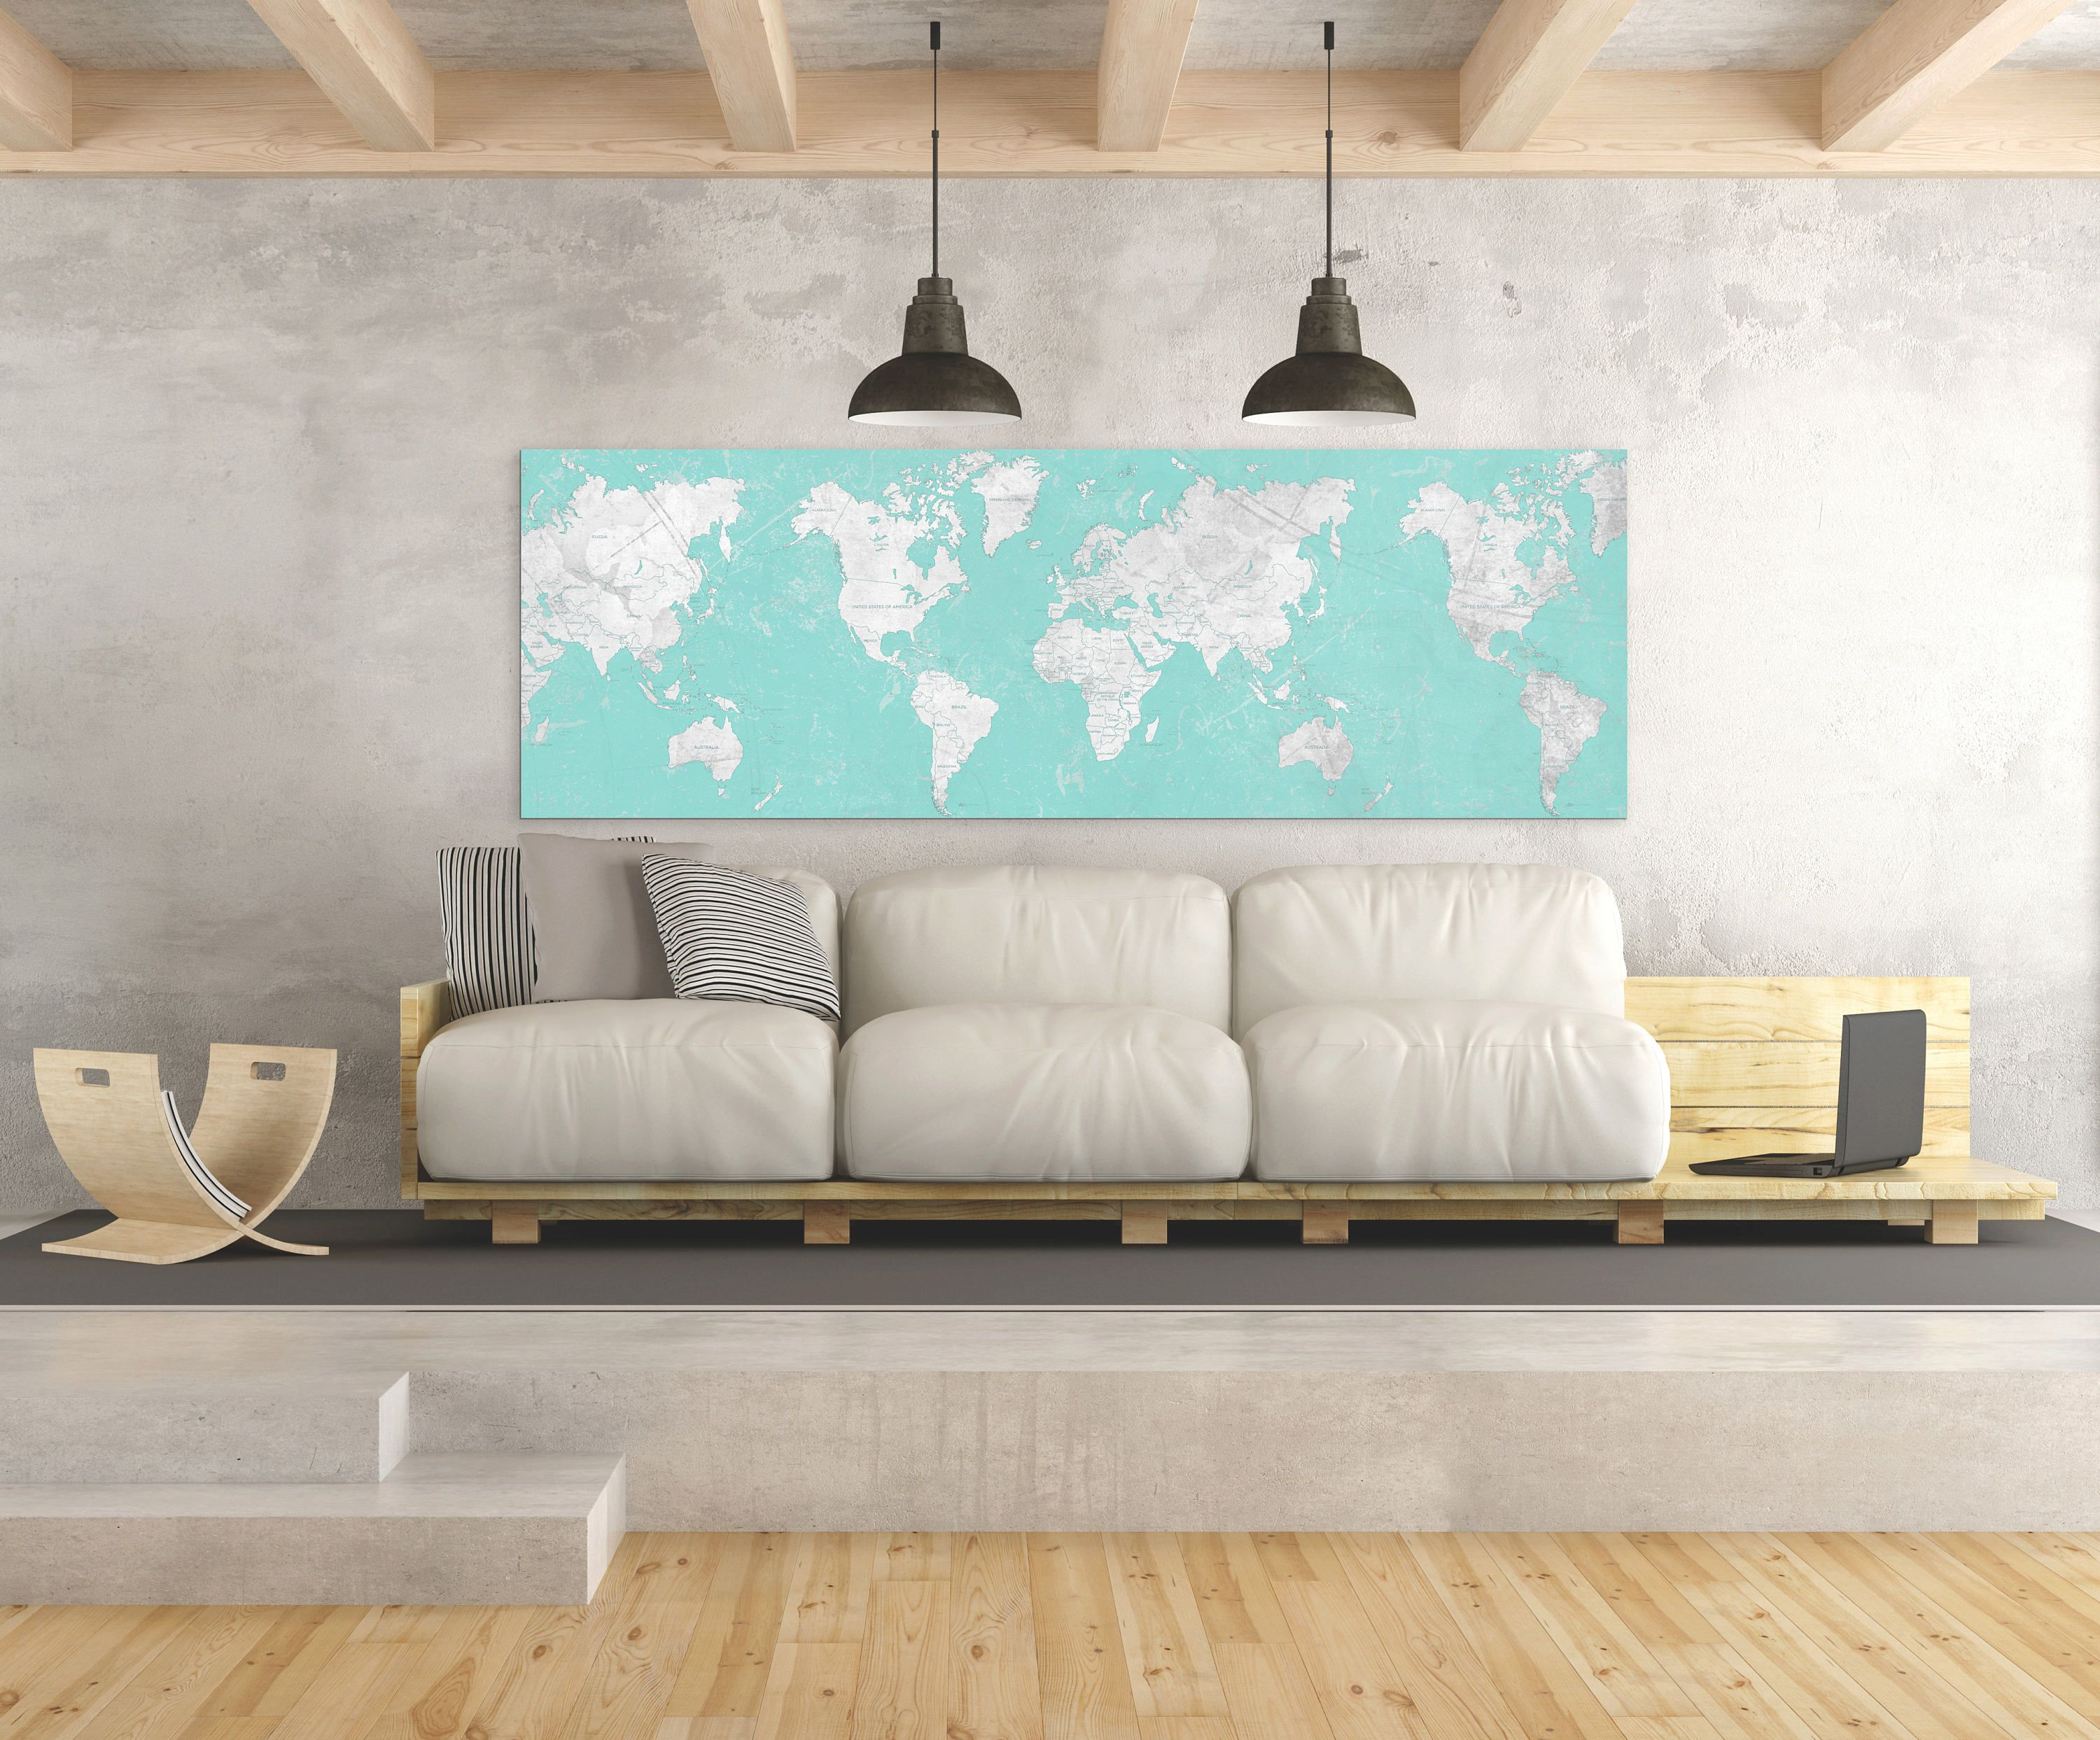 World map canvas print vintage map world map horizontal large world map canvas print vintage neutral light gray beige world map panoramic horizontal long wall art vintage oversized wall art decor poster gumiabroncs